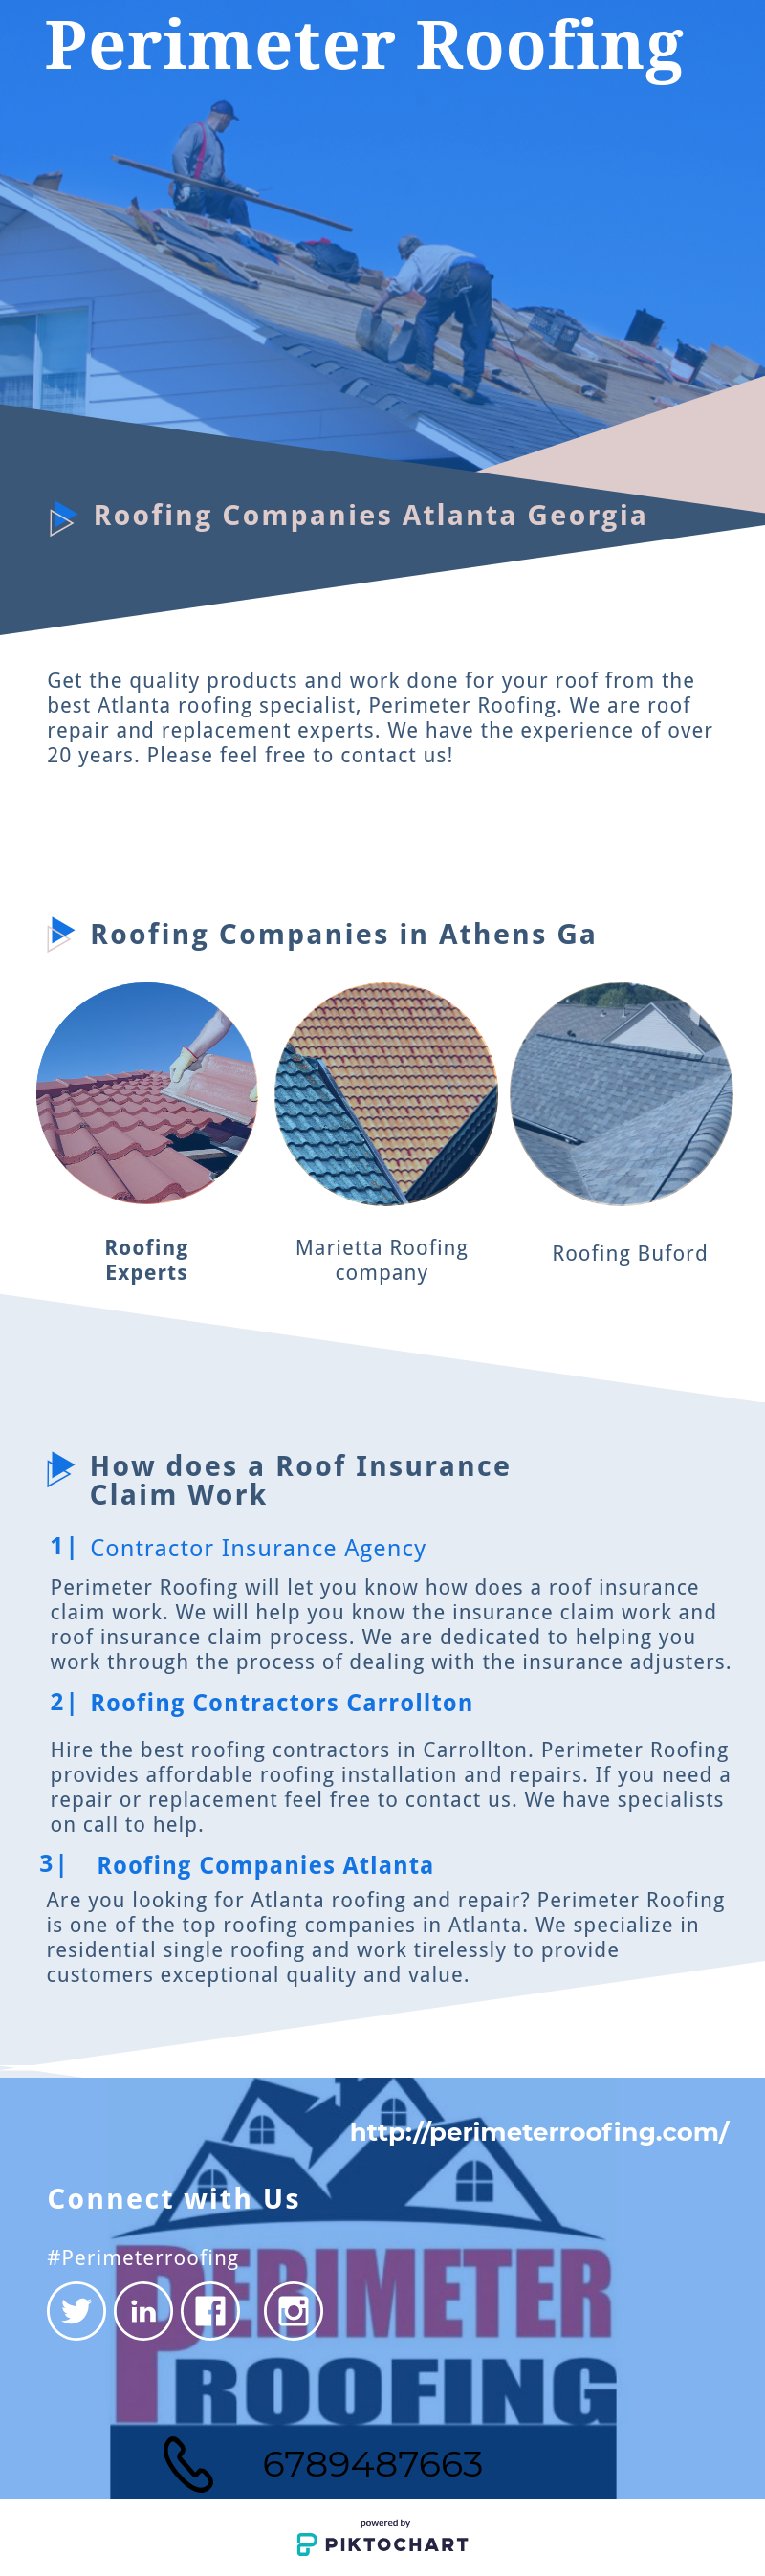 Perimeter Roofing Is The Roofing Repair Company In Marietta Ga